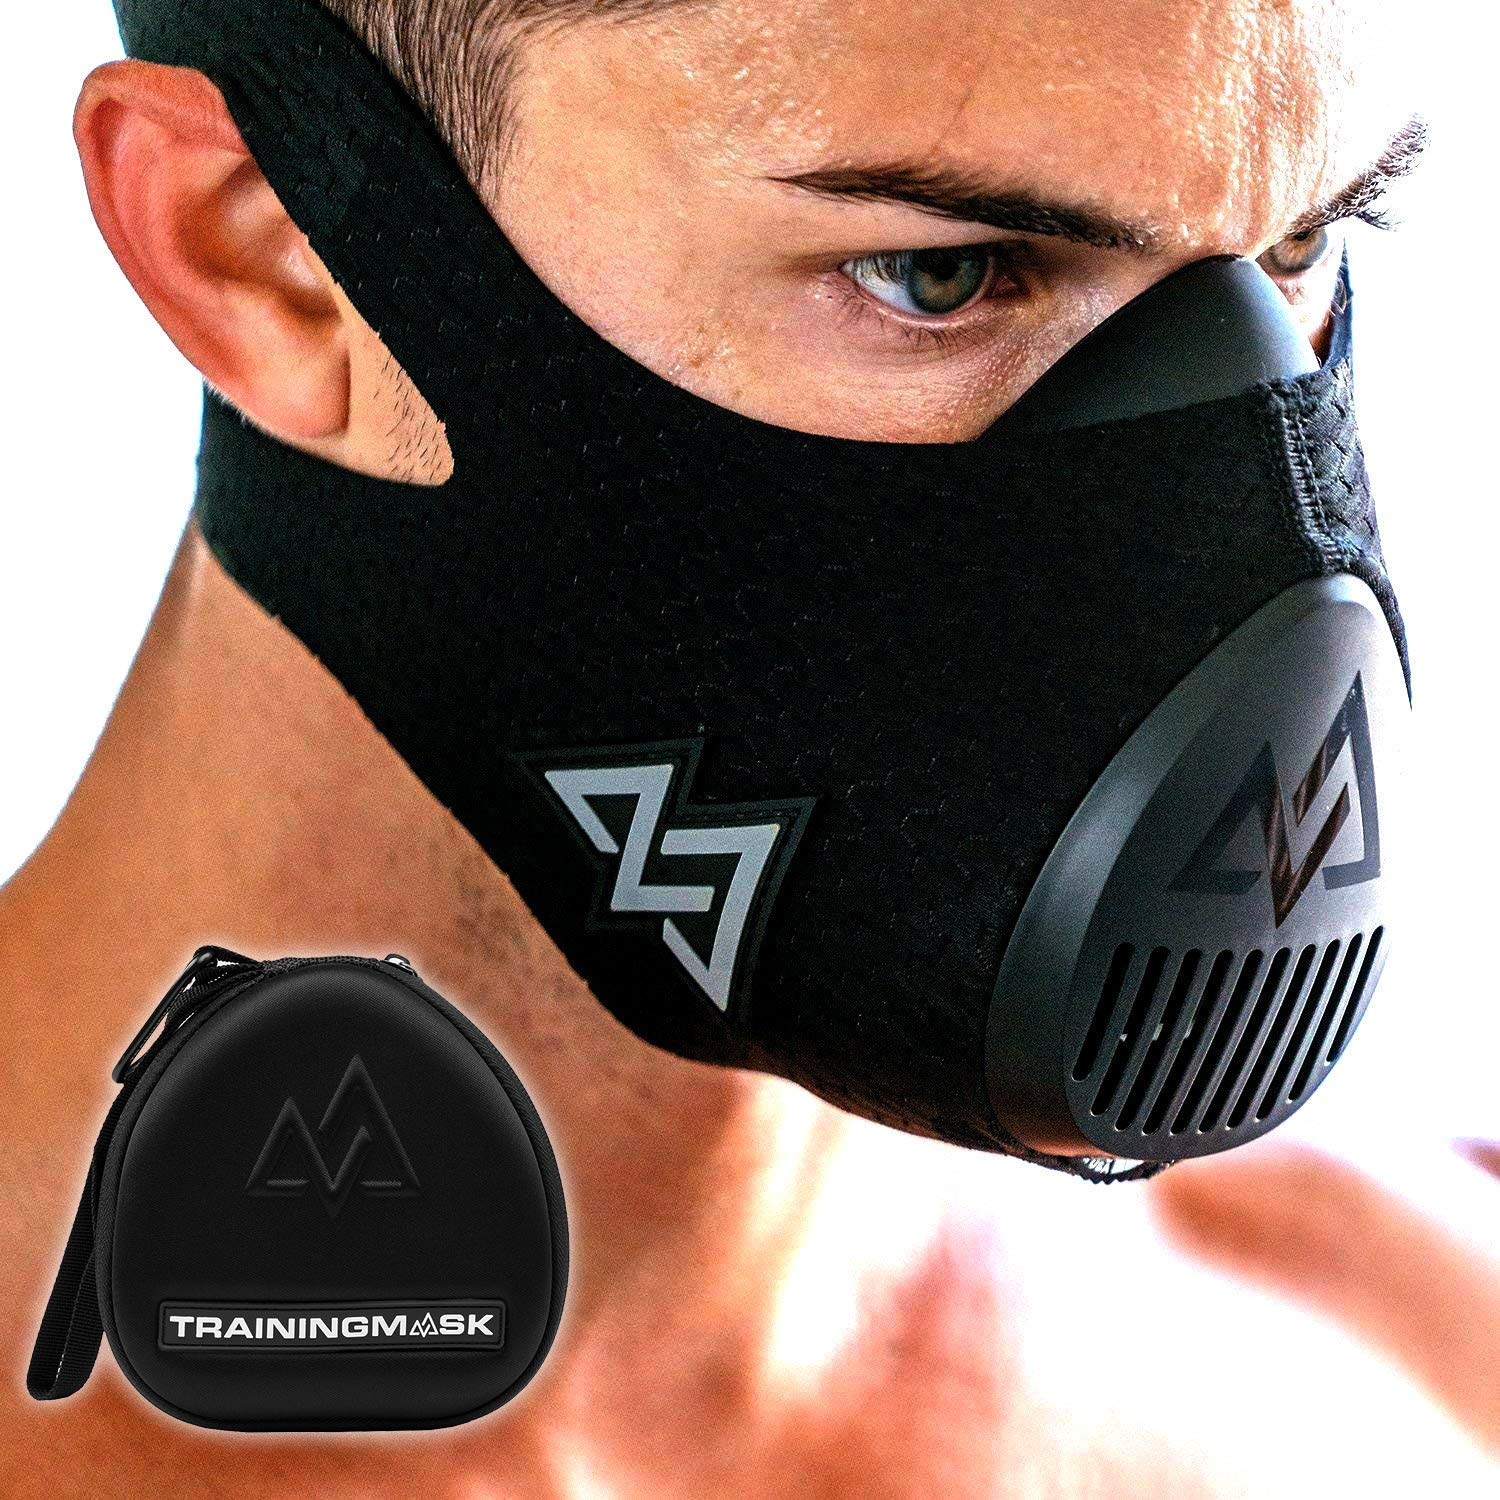 Training Mask 3.0 [EVA Case Included] Workout Elevation Performance Fitness Mask for Running and Breathing Mask, Cardio Mask, Official Training Mask Used by Pros (All Black + Case, Small)